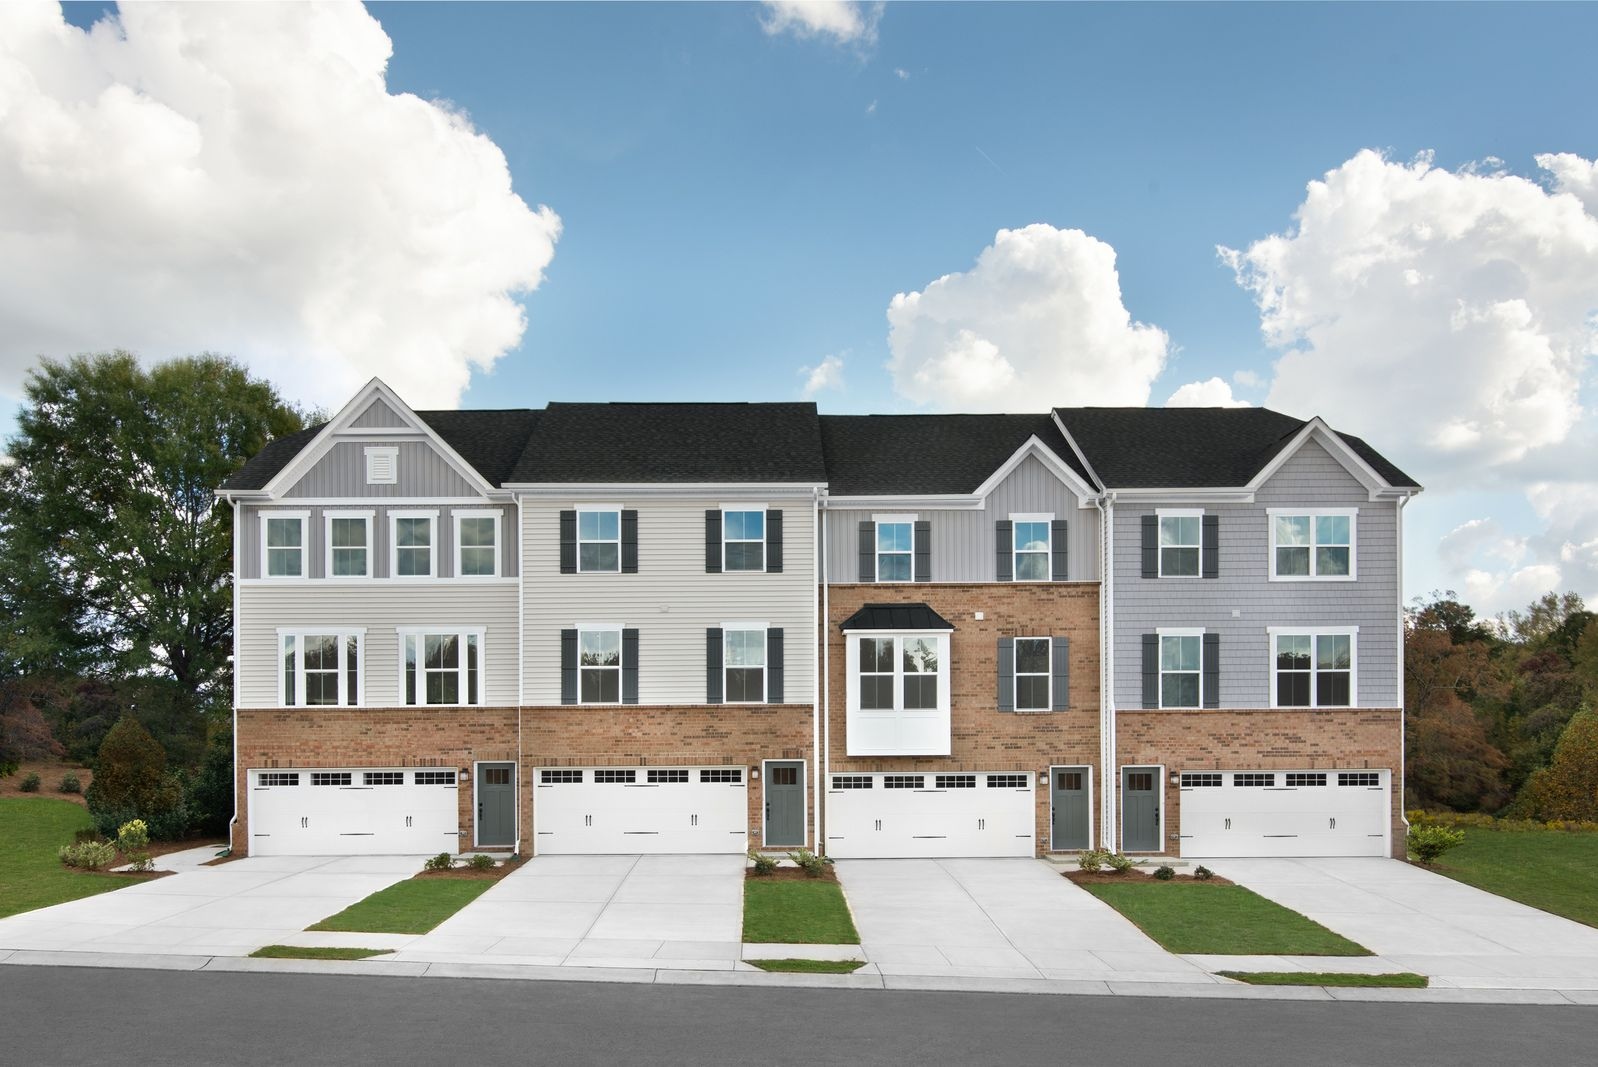 Spacious Townhomes in Regent Park:Own a spacious new townhome in Fort Mill near everything you need.Schedule a visitto learn more!